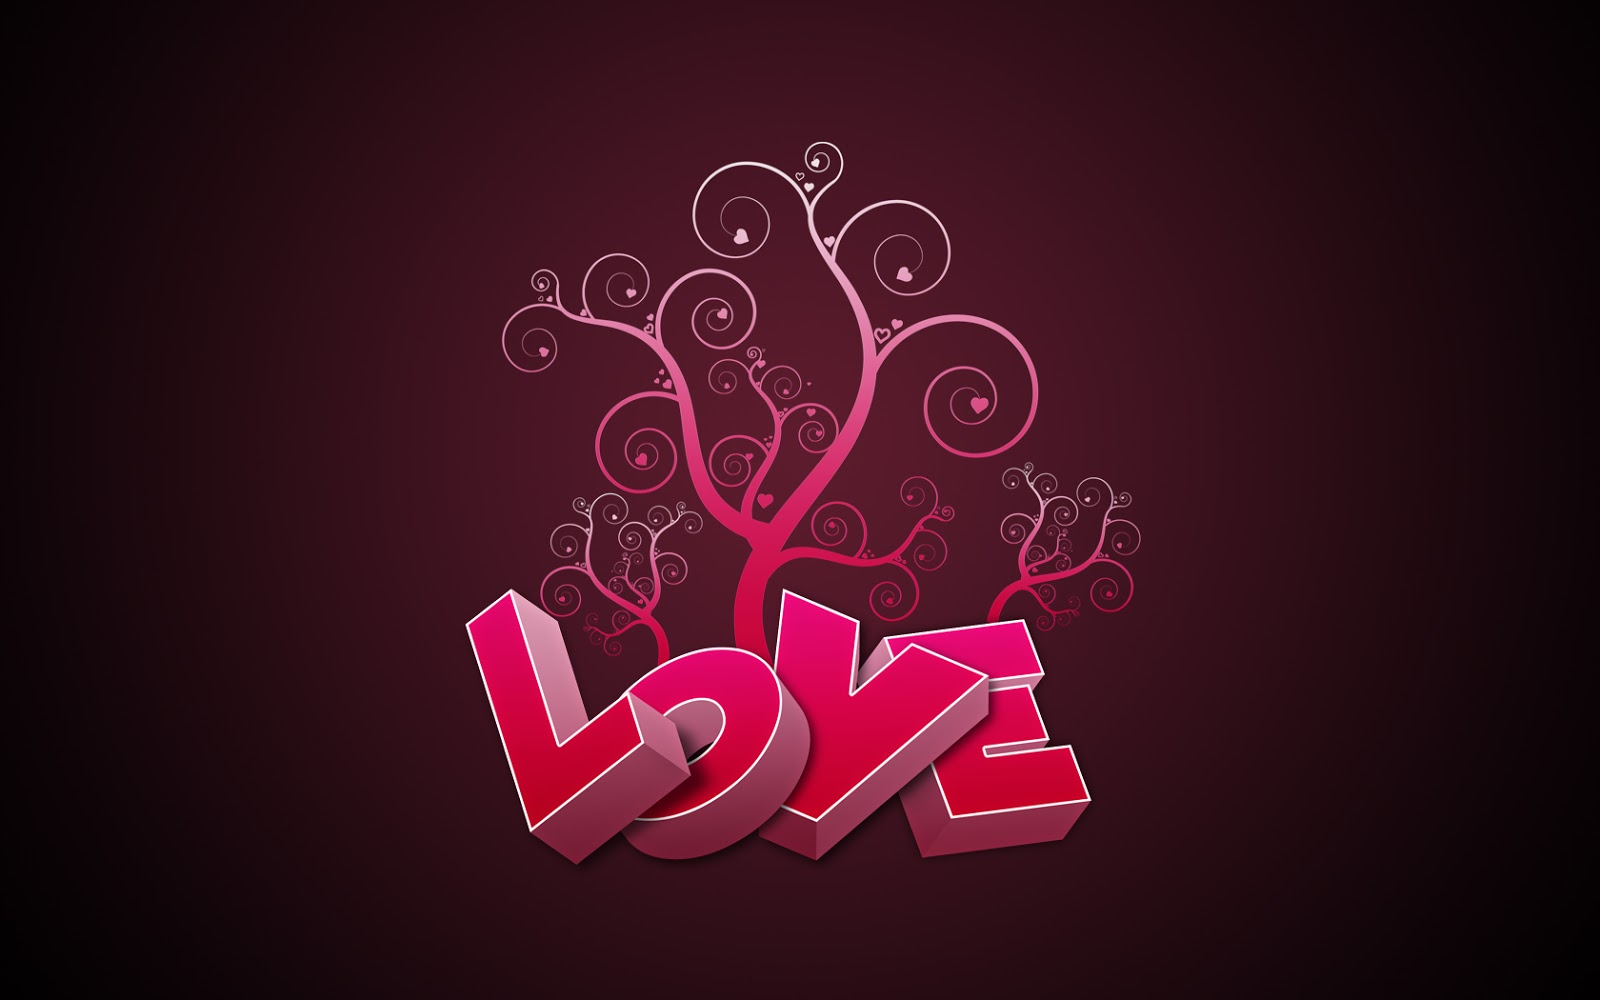 Love Wallpaper Hd For I Phone : Sms with Wallpapers: 12/28/13